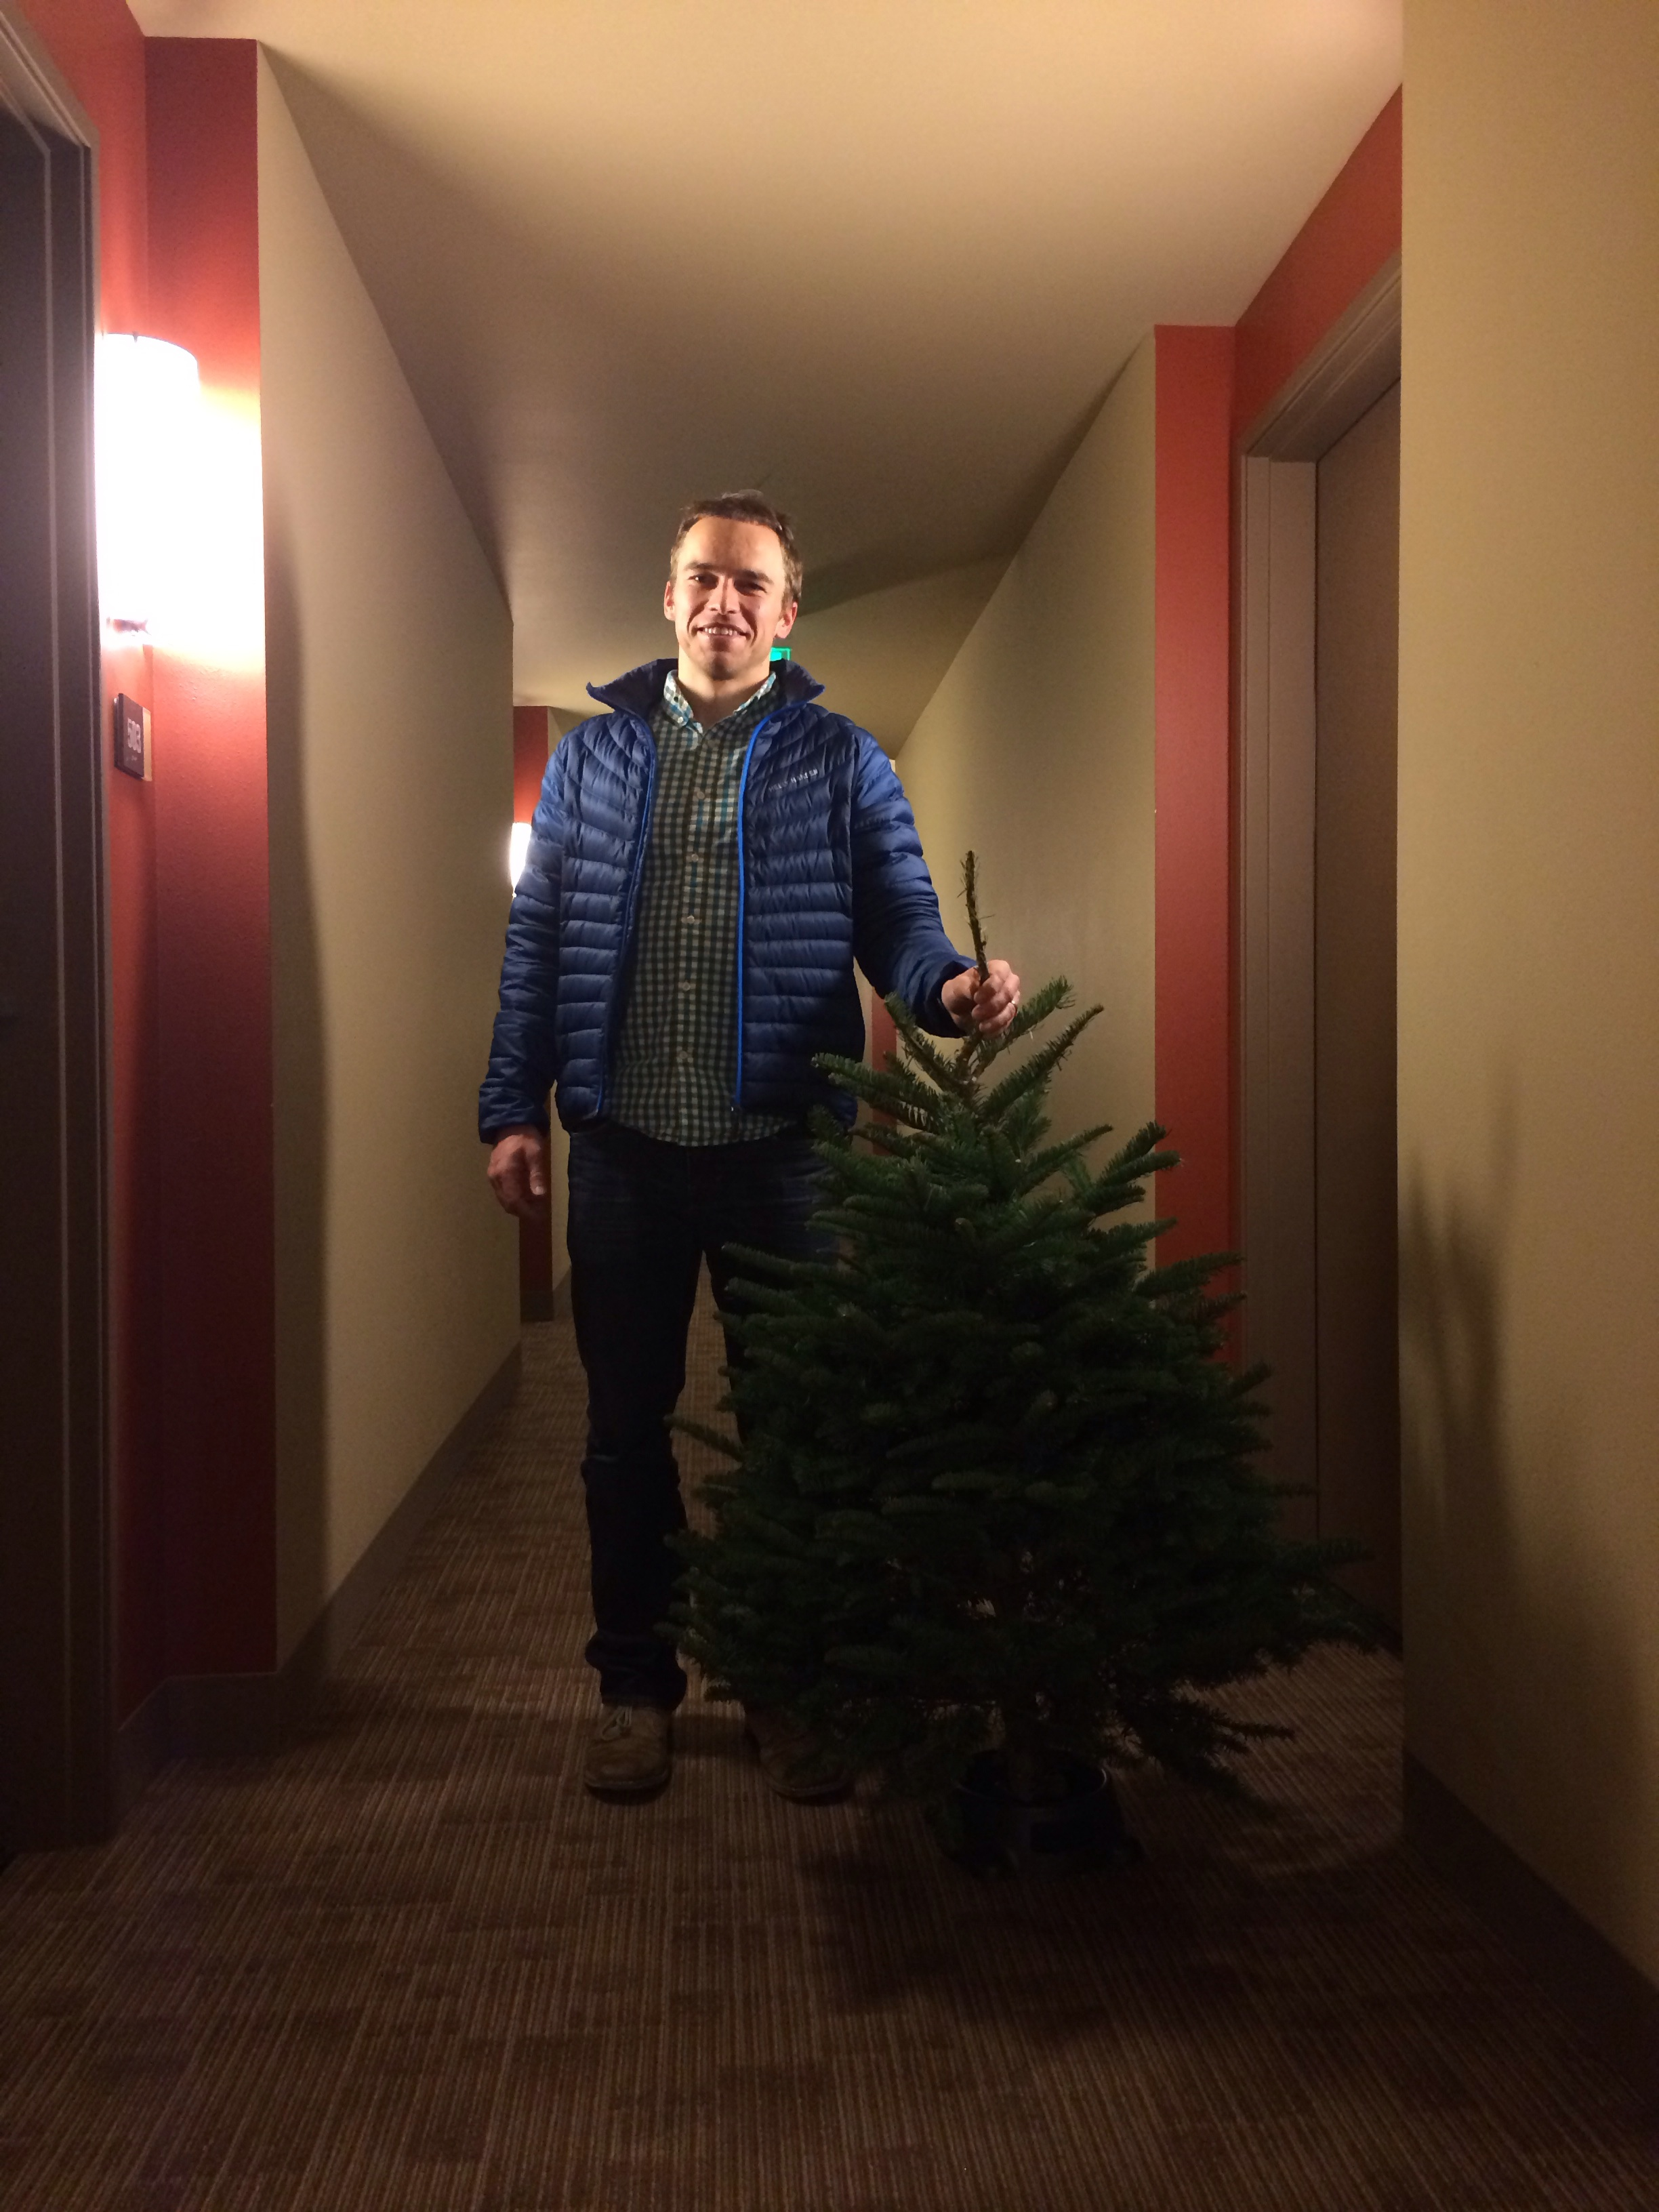 We picked out a Christmas tree right after we left the midwife's office that night.